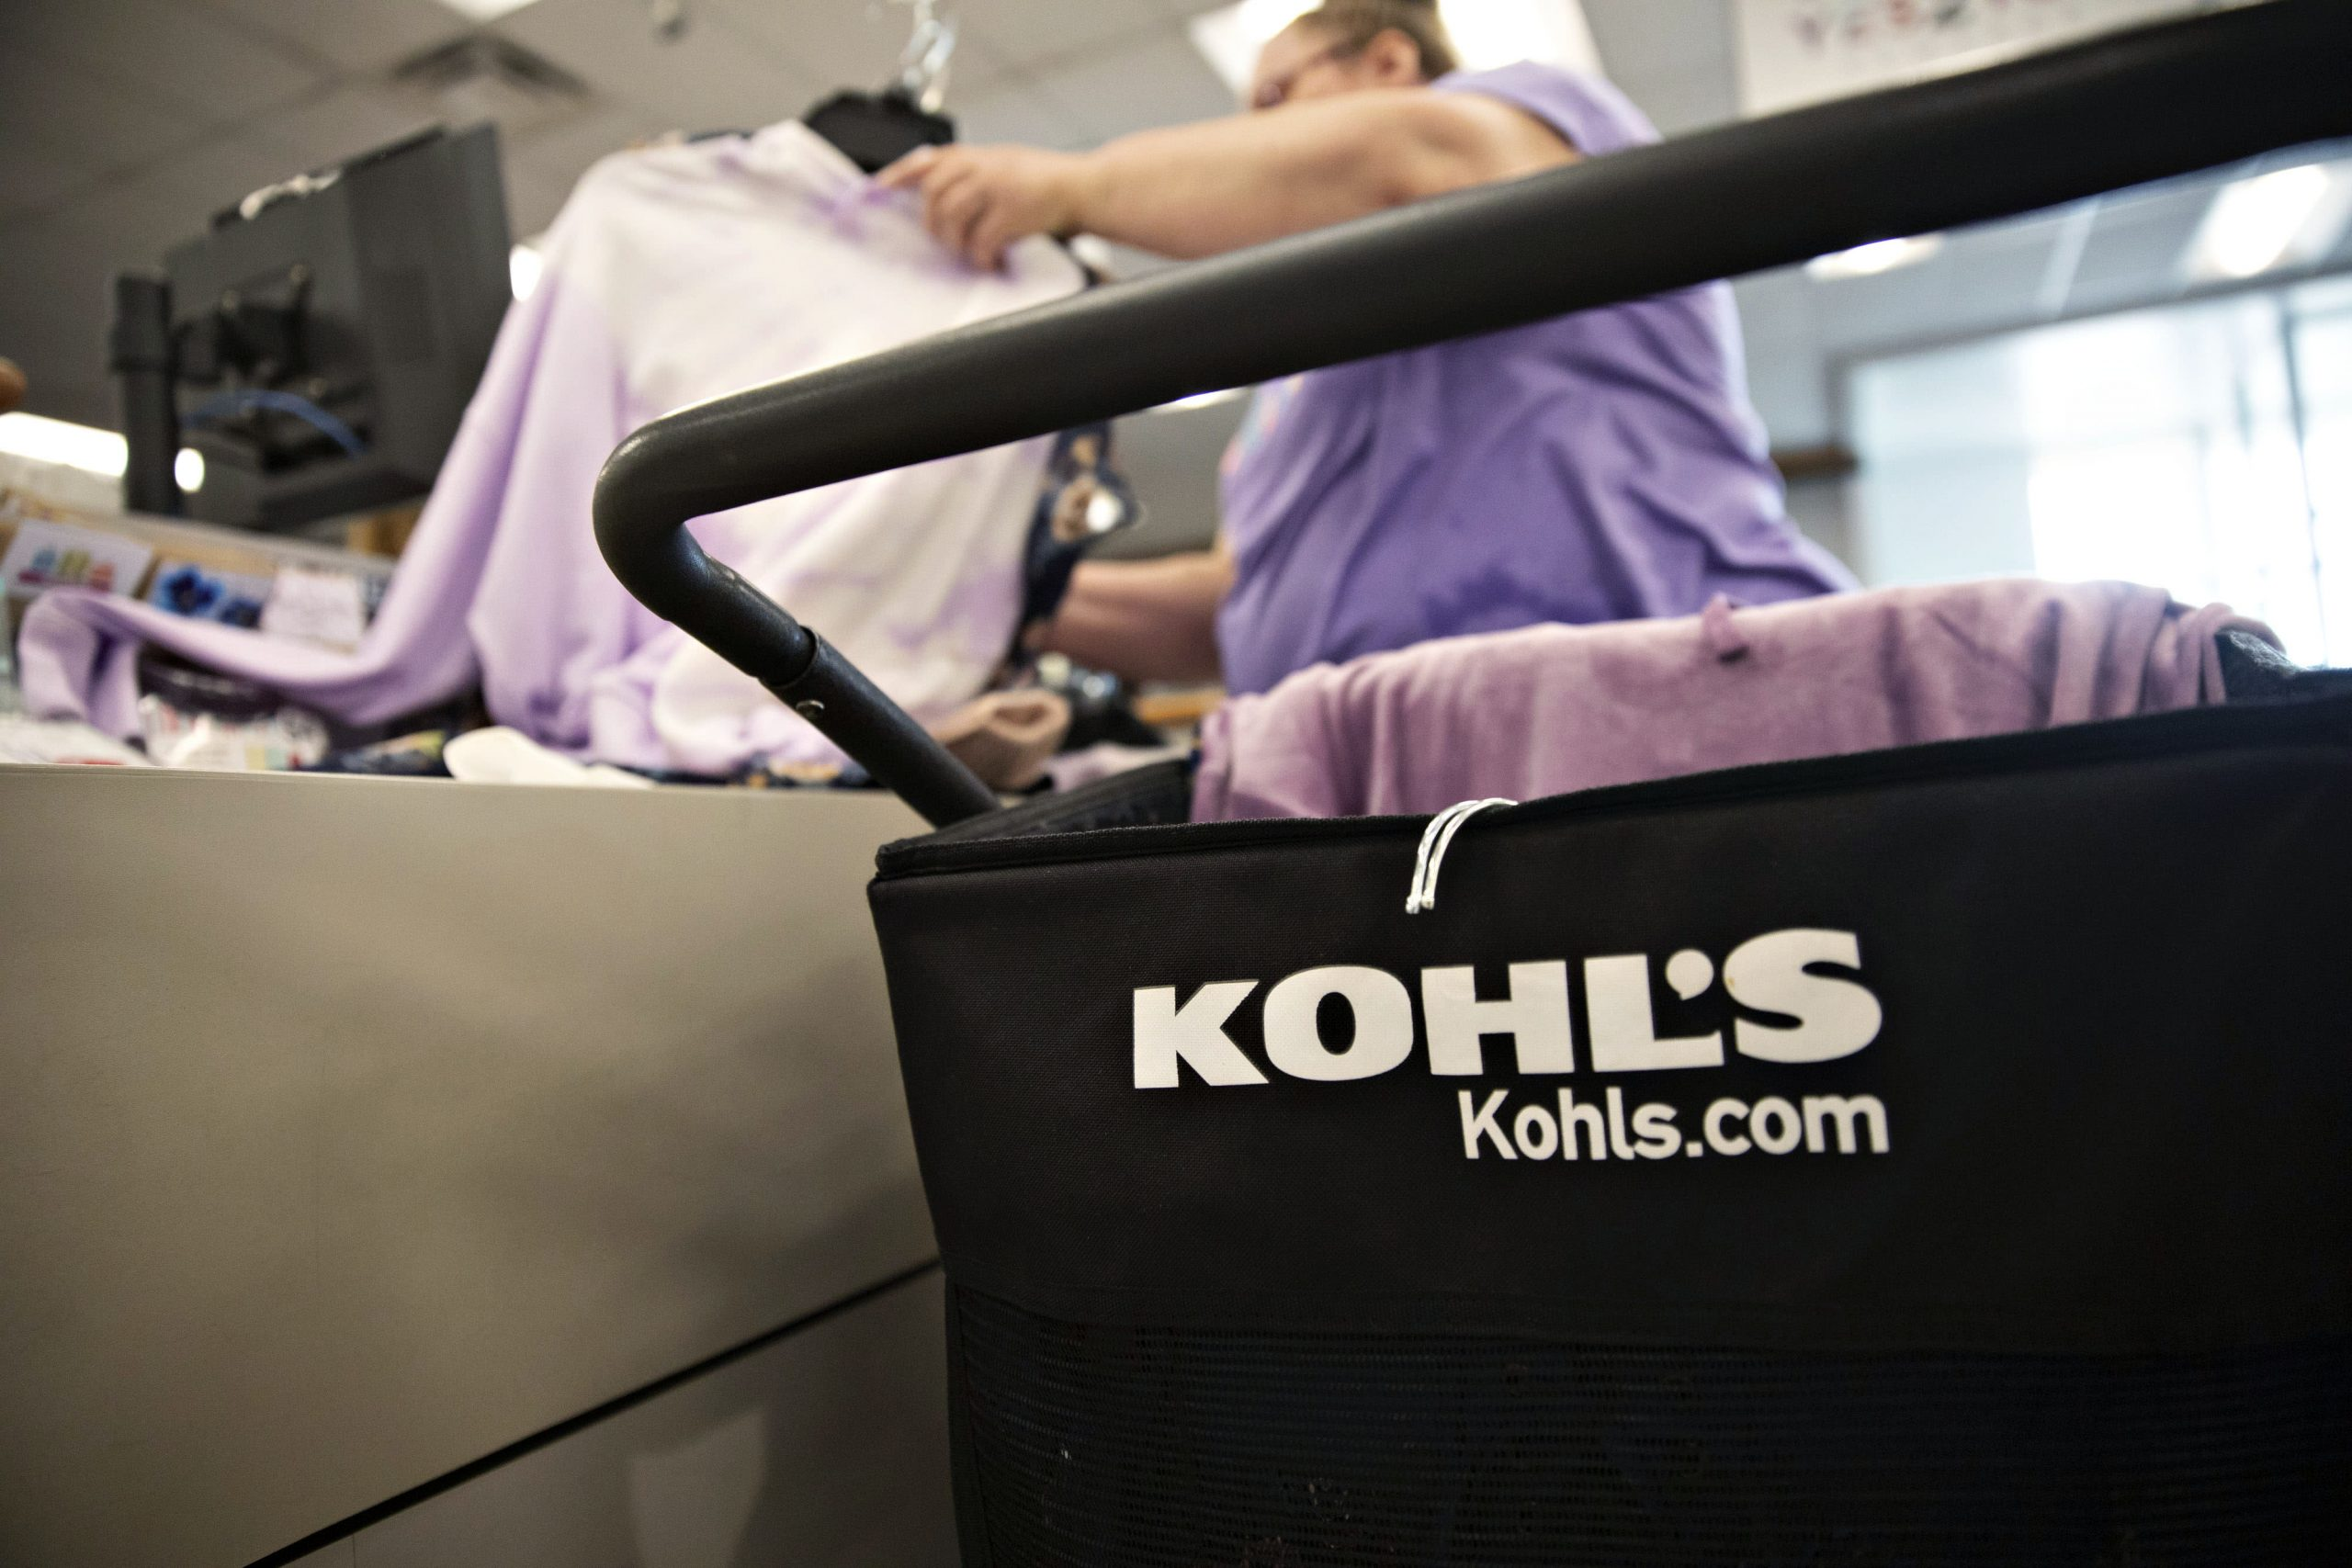 Kohl's sales fall 13% as shoppers shift spending away from apparel